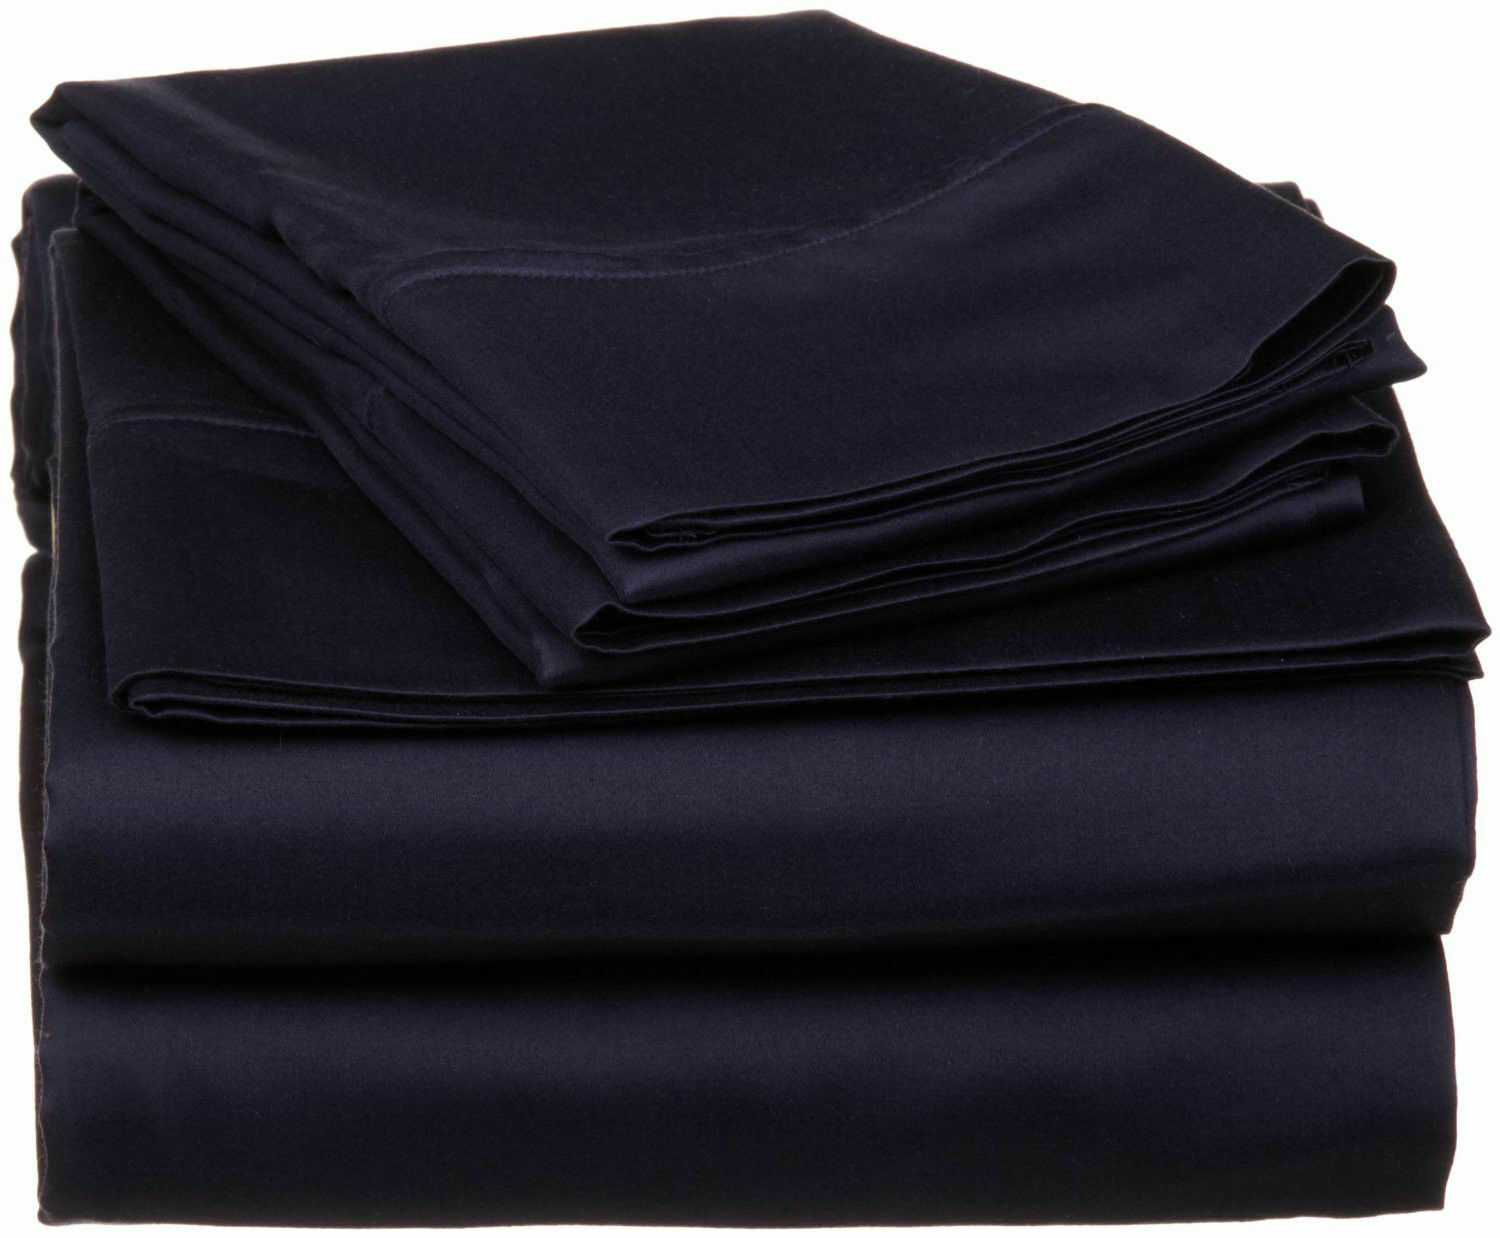 Bed Sheet Set Navy bluee Solid RV Camper & BUNK Bed All Size 1000 TC 100%Cotton